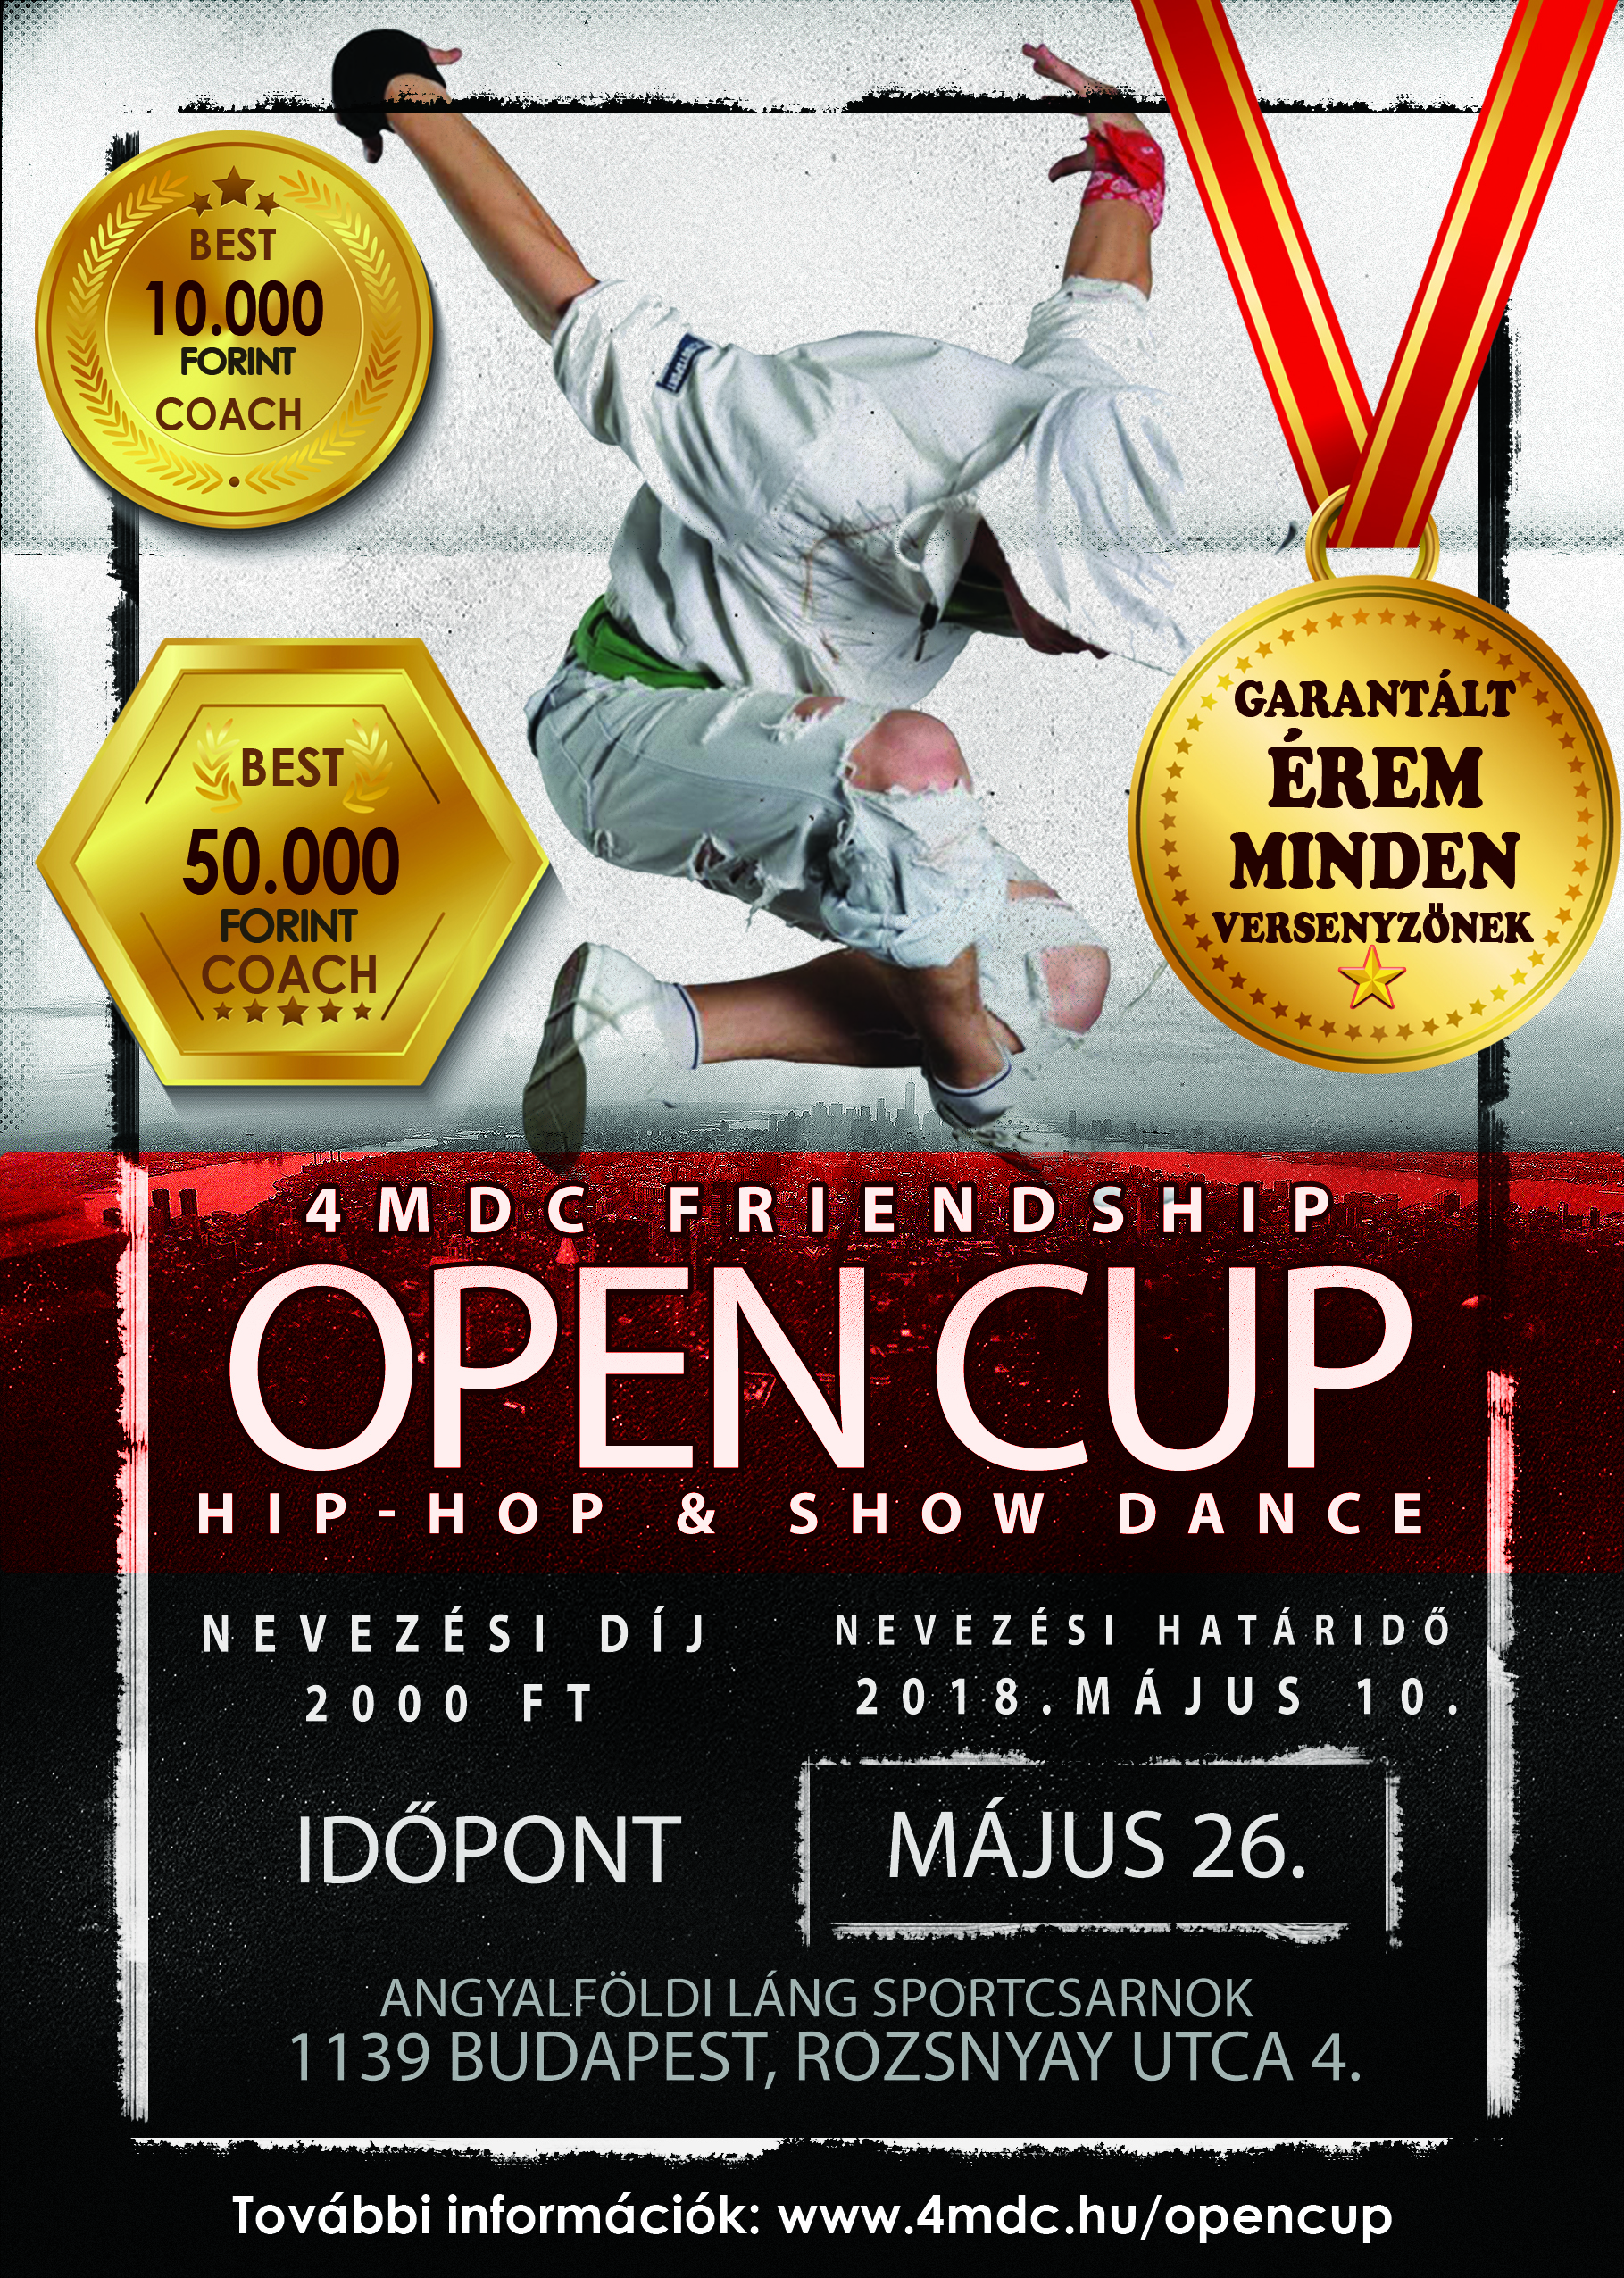 4MDC Frienship OPEN CUP